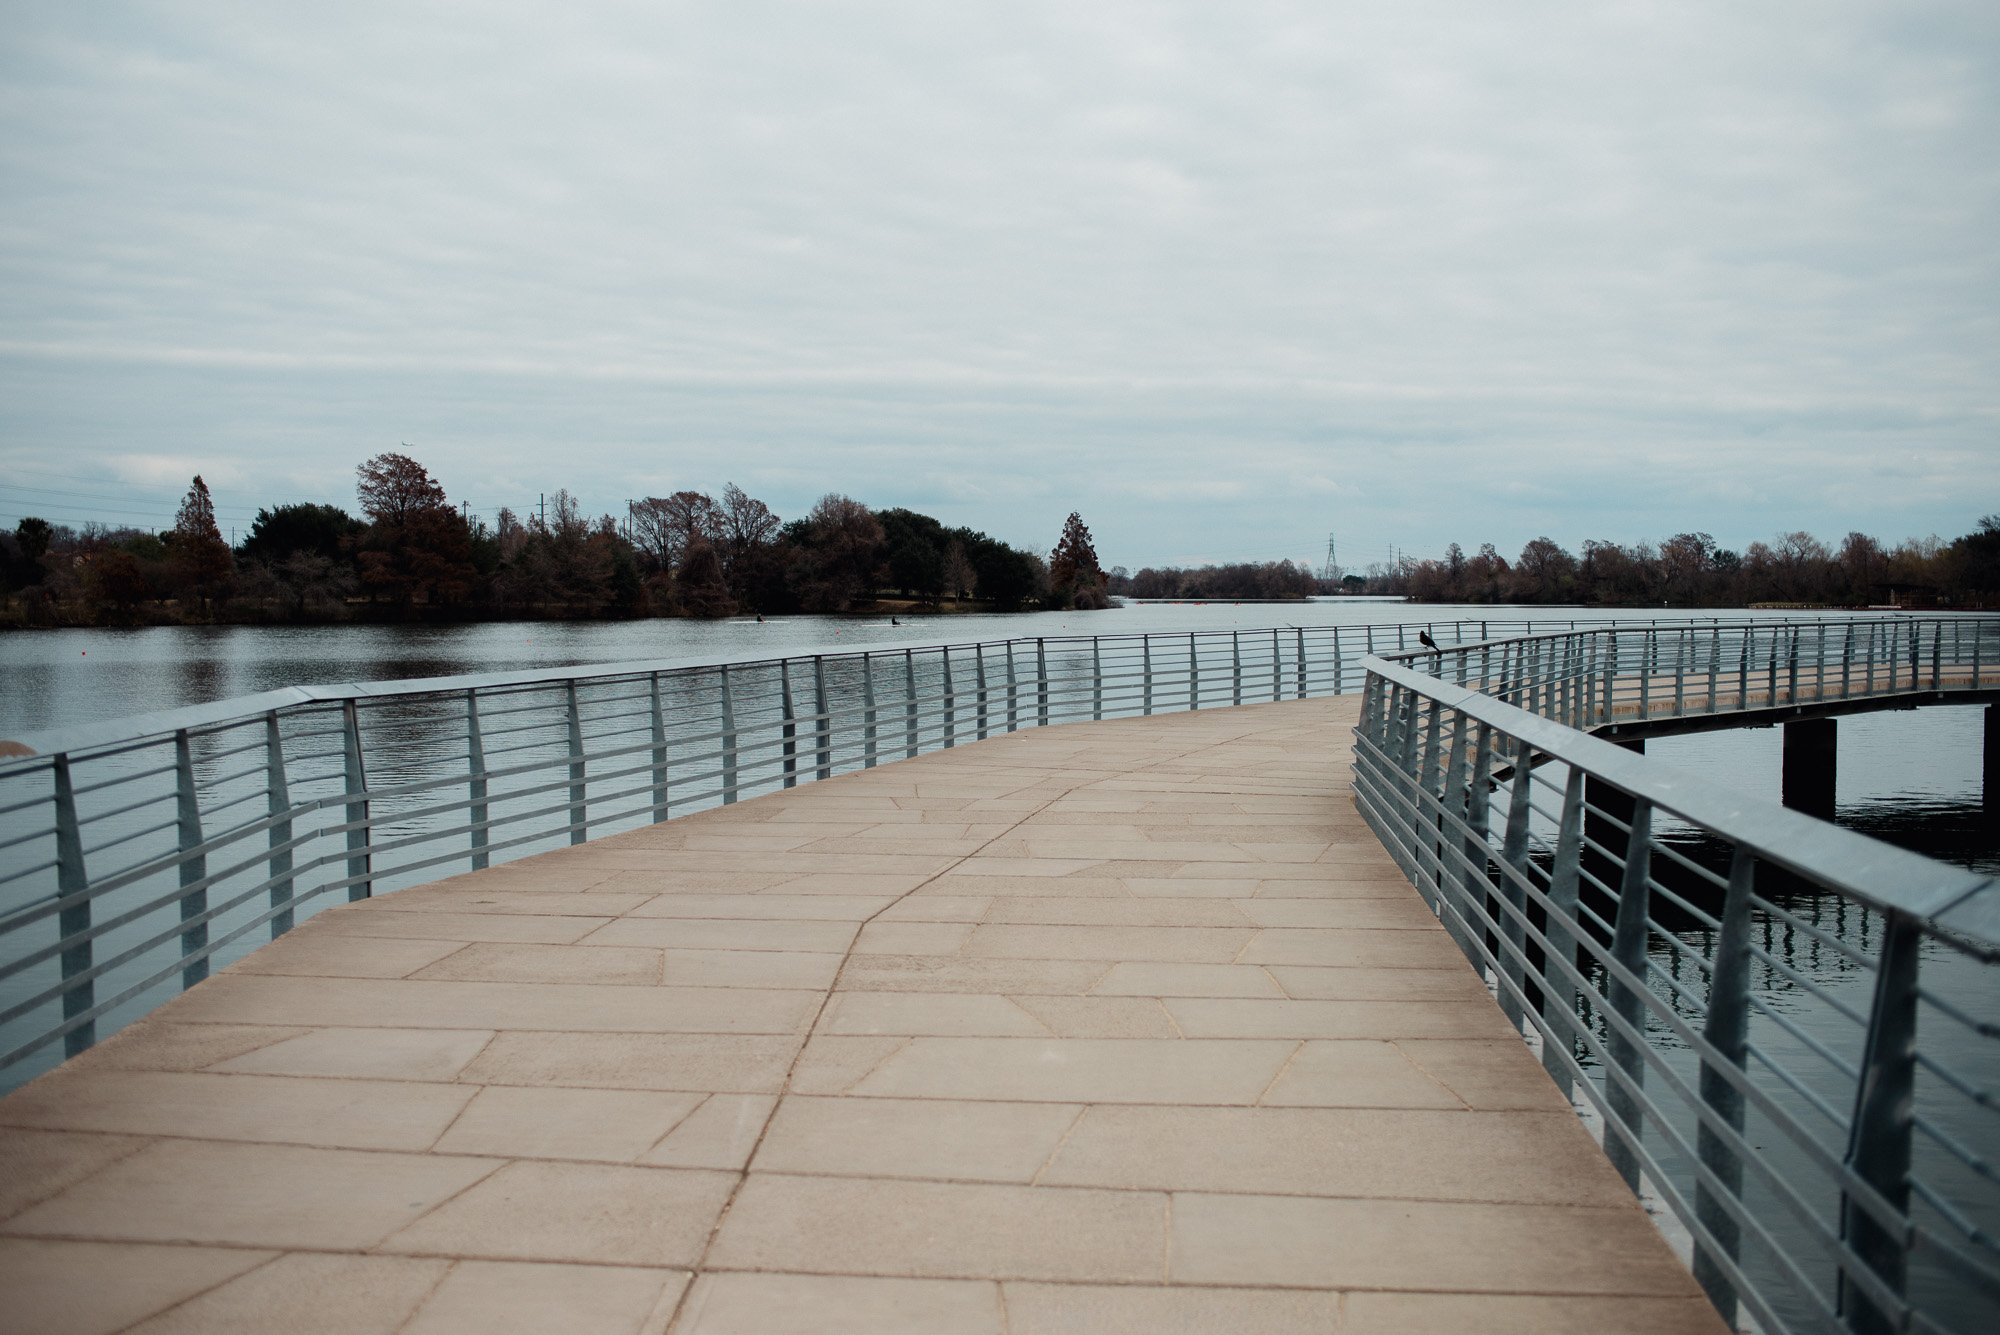 newest section of the town lake boardwalk in austin